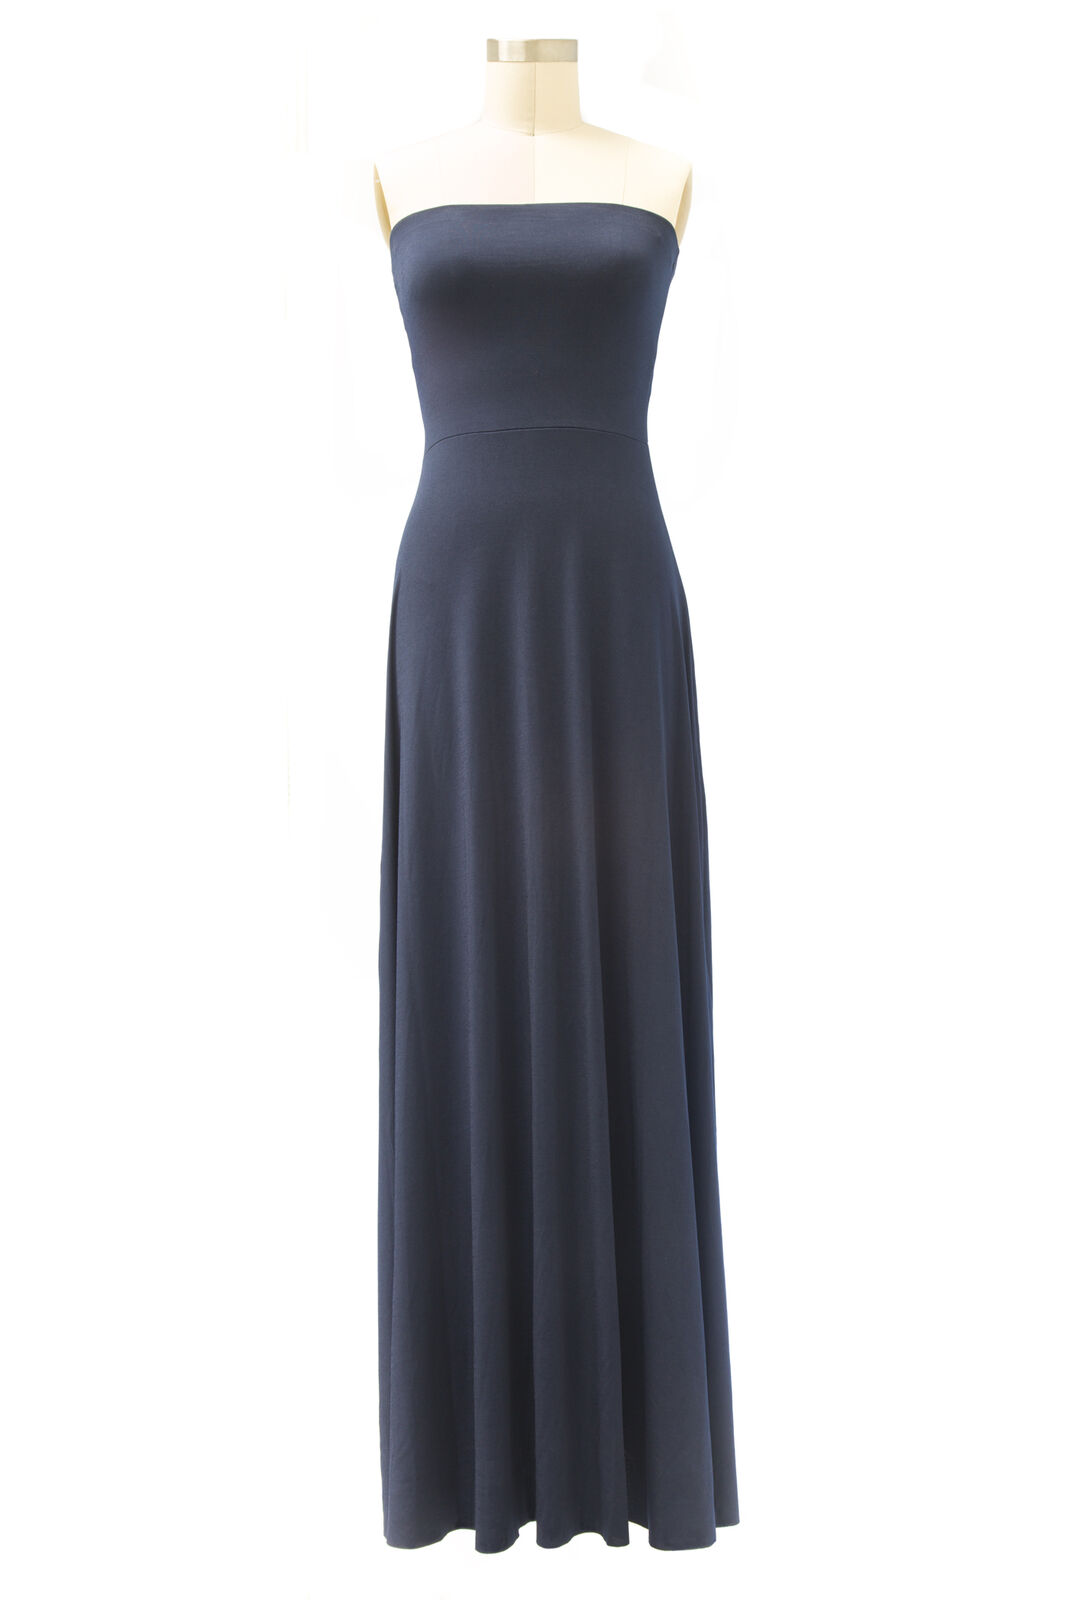 VON VONNI Women's Navy Cassandra Long Tube Maxi Dress NEW